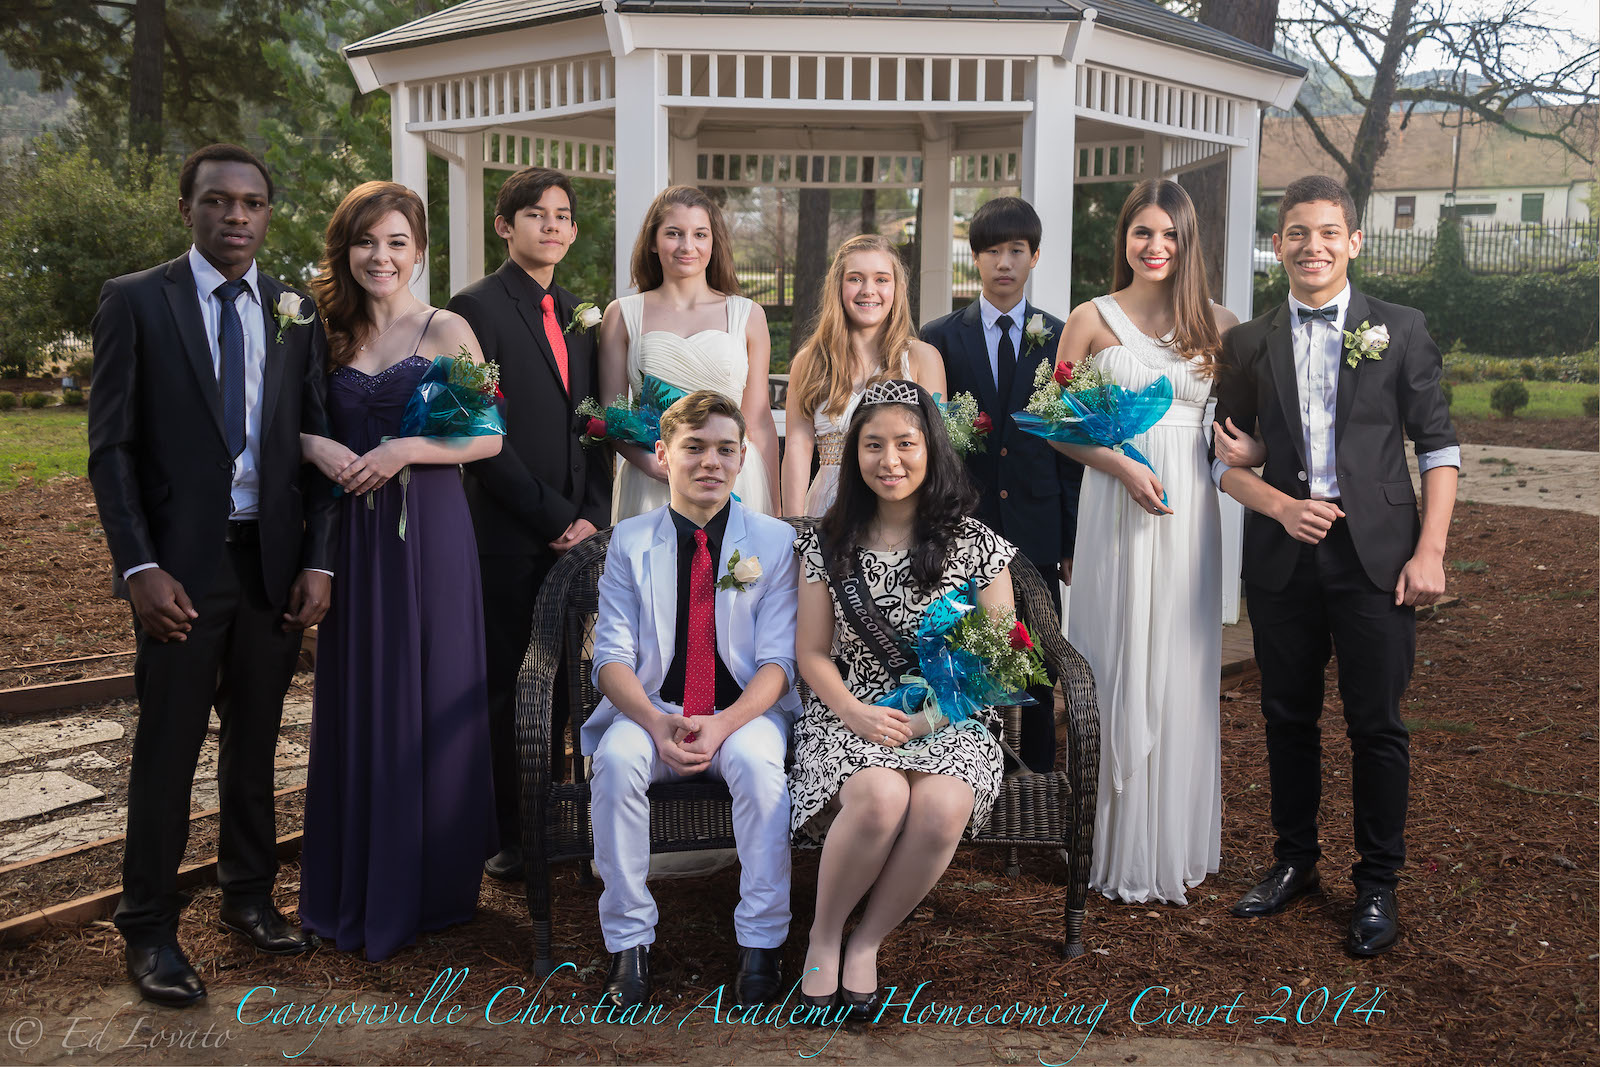 Canyonville Christian Academy's 2014 Homecoming Court